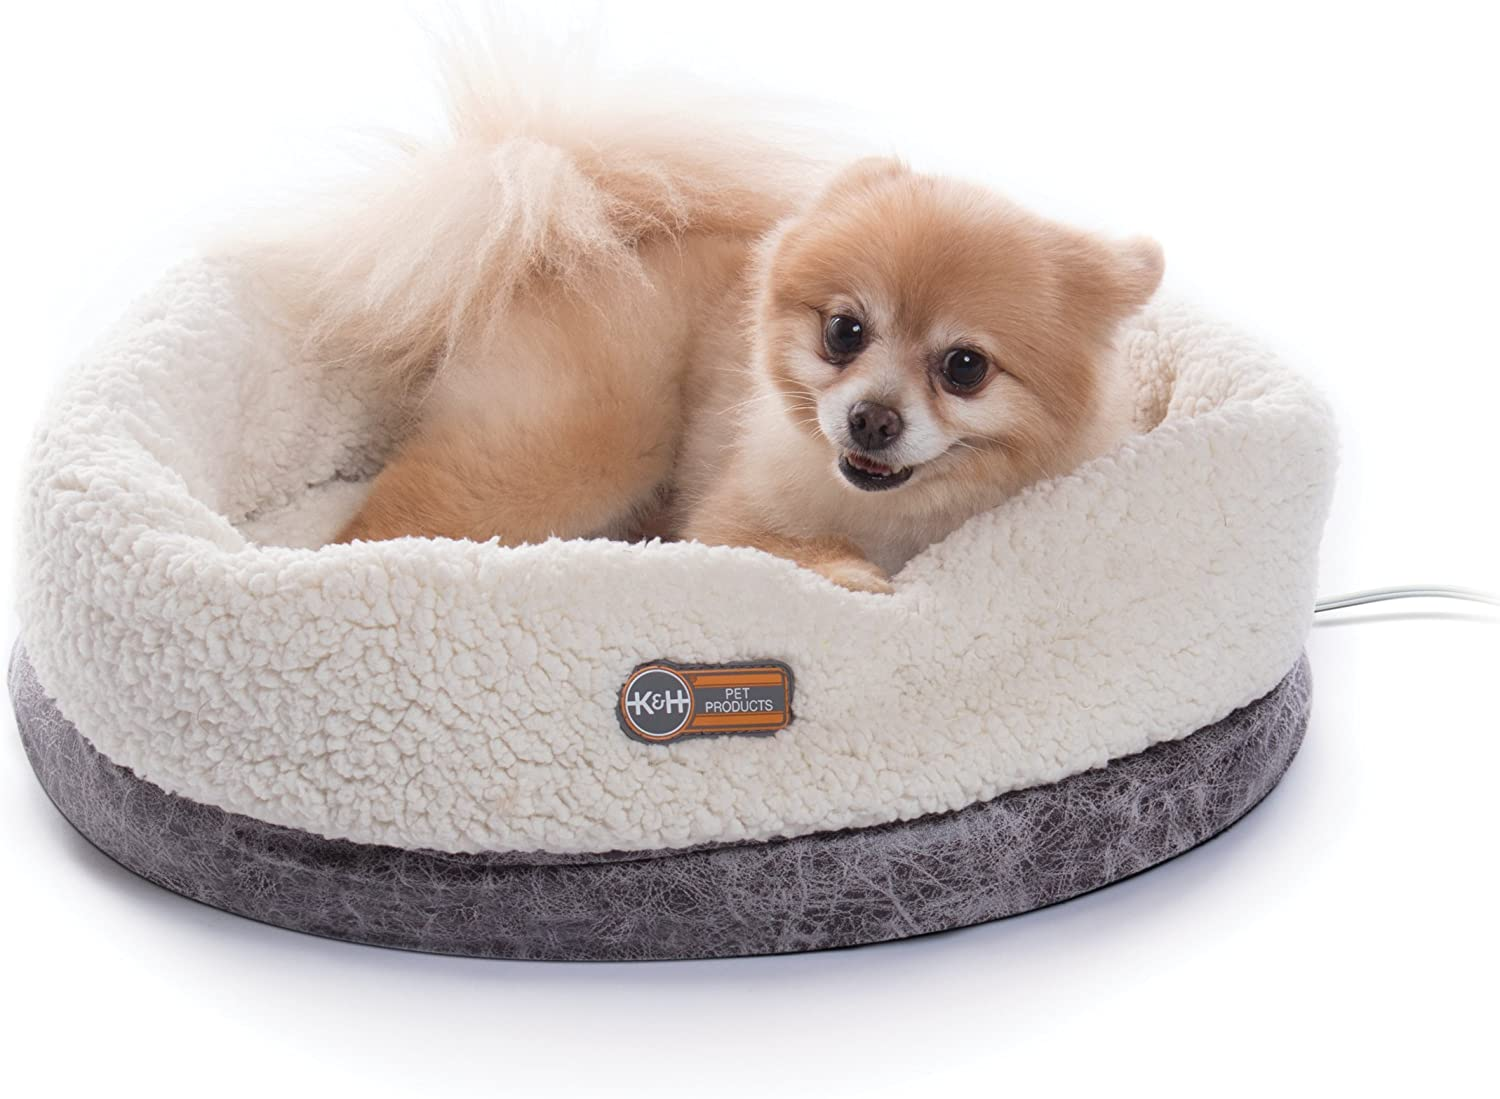 K&H Pet Products Thermo-Snuggle Cup Bomber - Indoor Heated Cat Bed